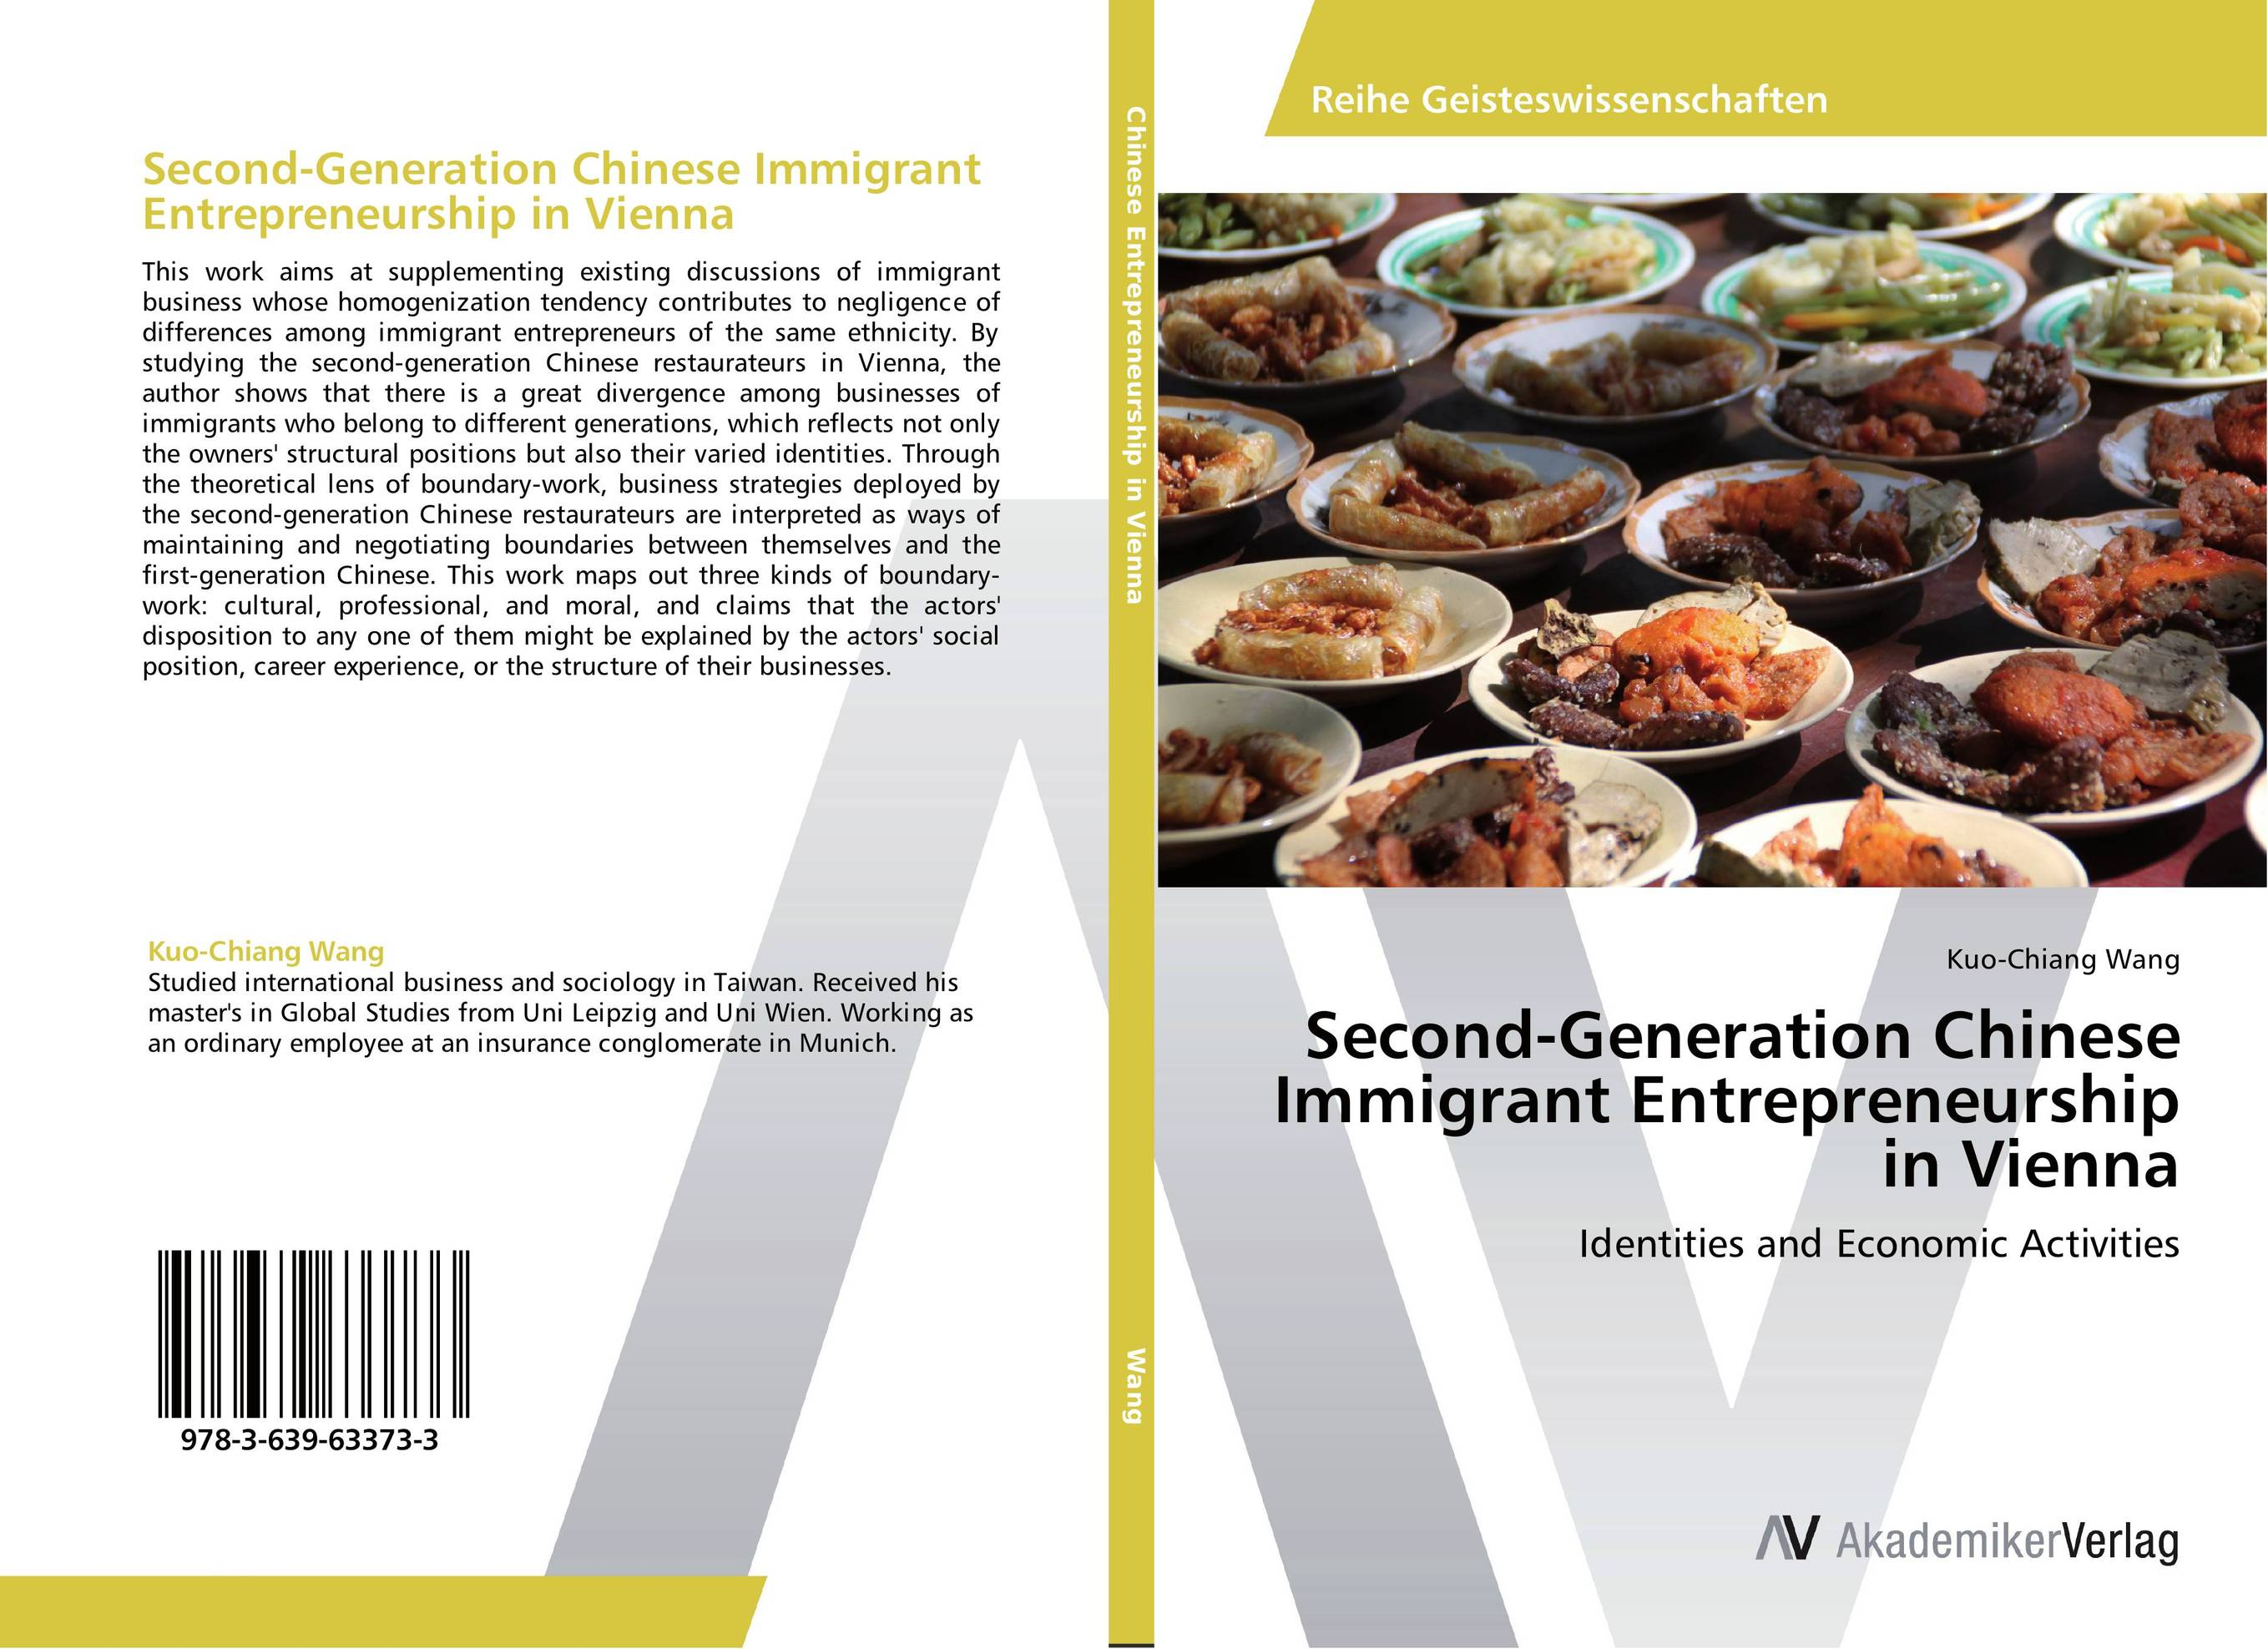 Second-Generation Chinese Immigrant Entrepreneurship in Vienna richard herman t immigrant inc why immigrant entrepreneurs are driving the new economy and how they will save the american worker